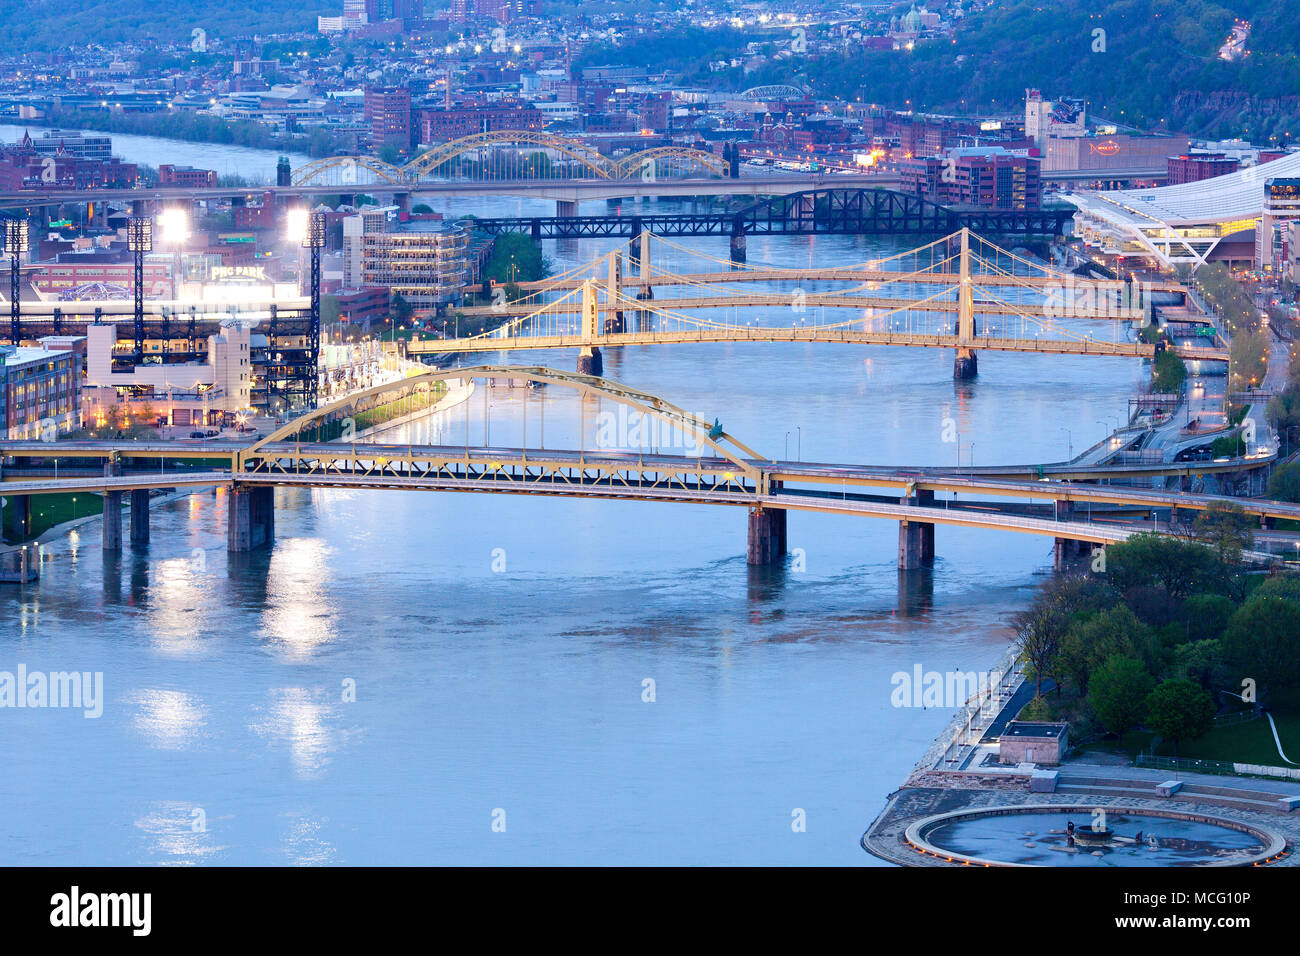 Pittsburgh, Washington State, United States - Bridges over the Allegheny River. - Stock Image